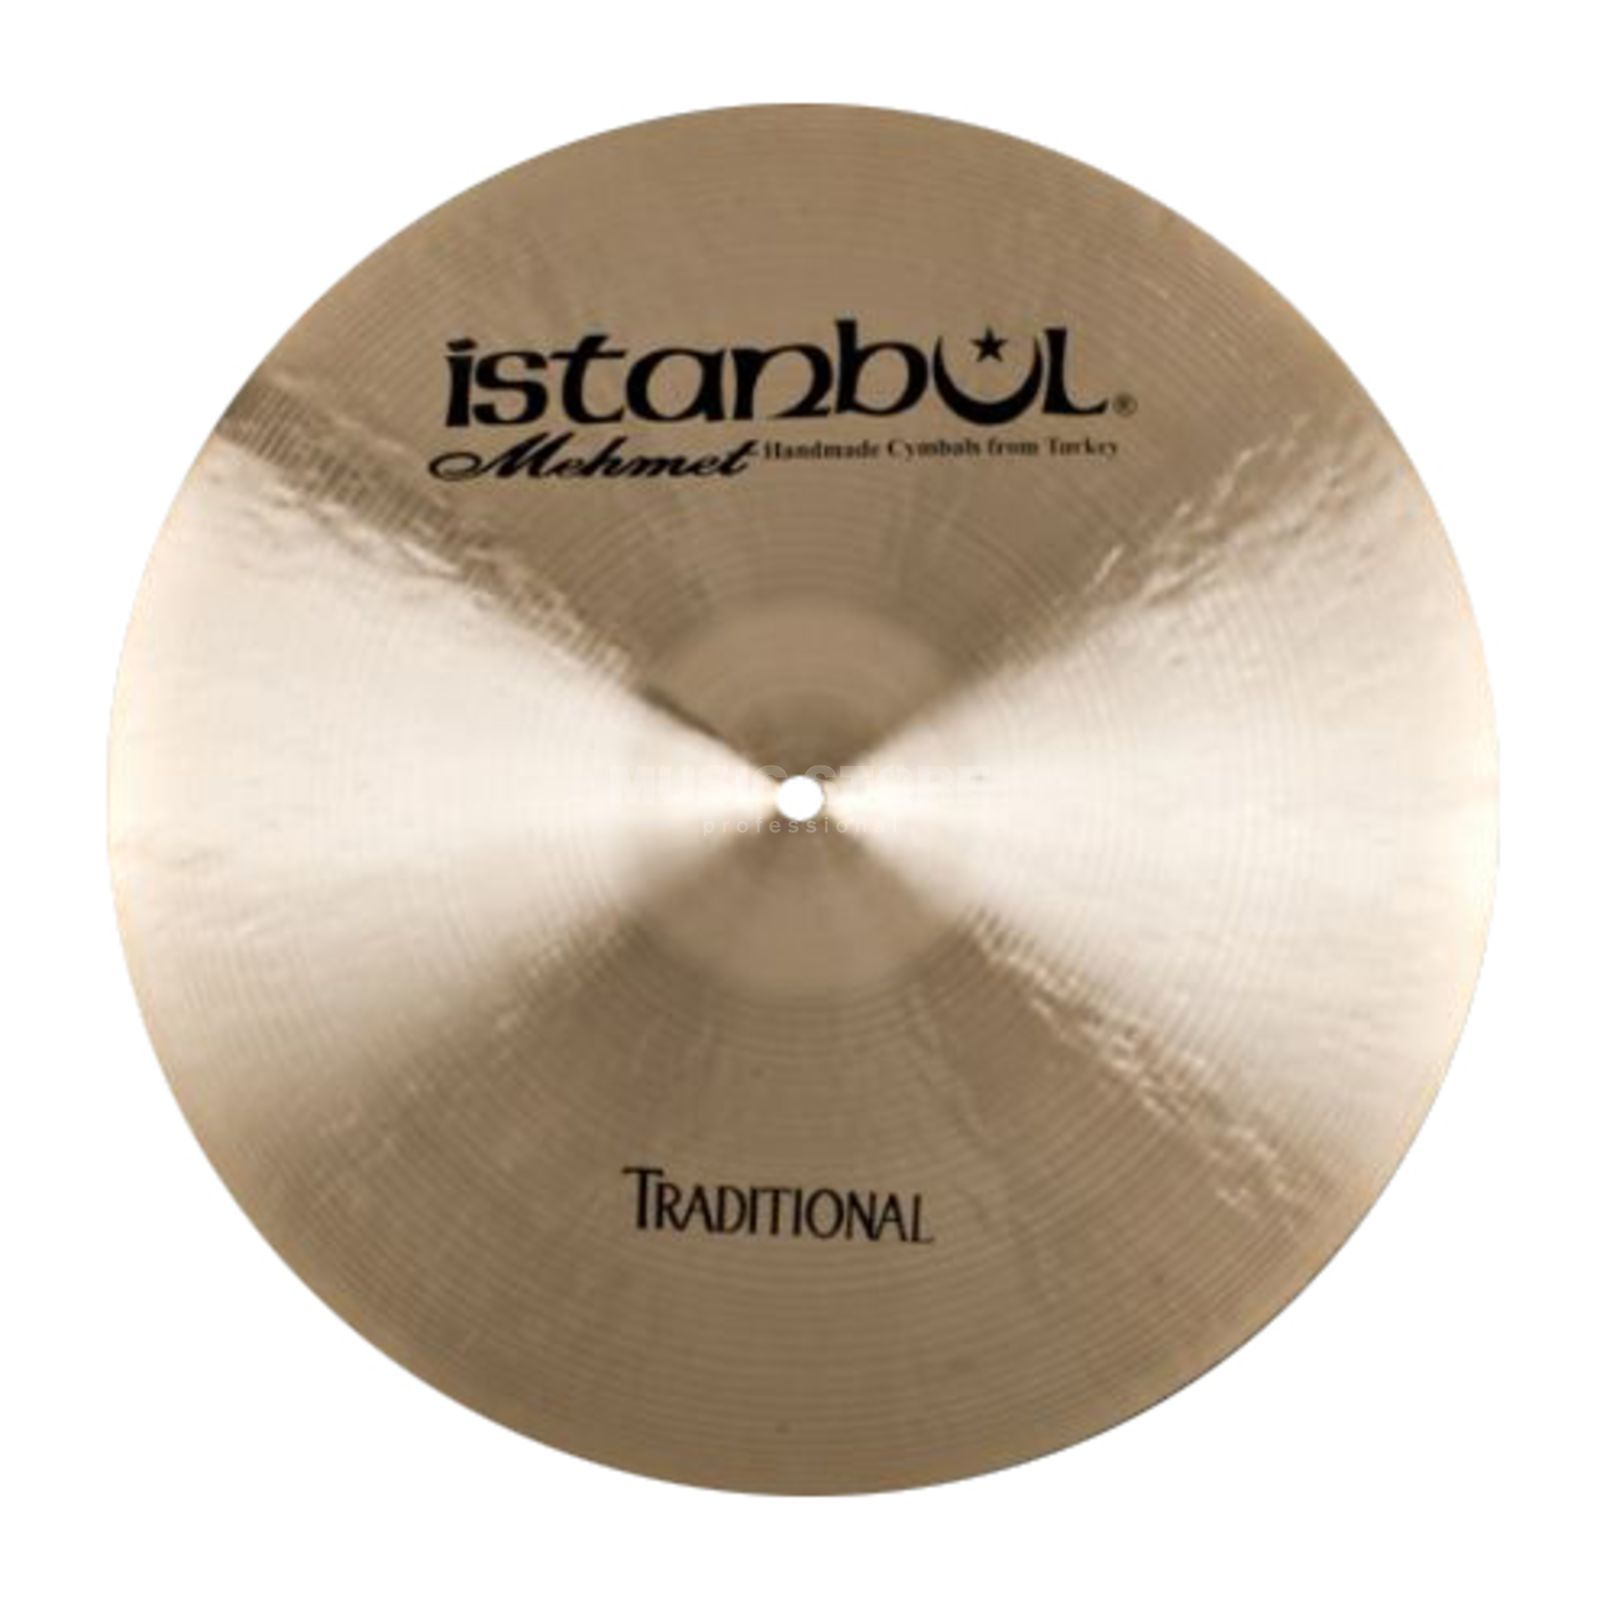 "Istanbul Traditional Dark Crash 17"", CD18 Product Image"